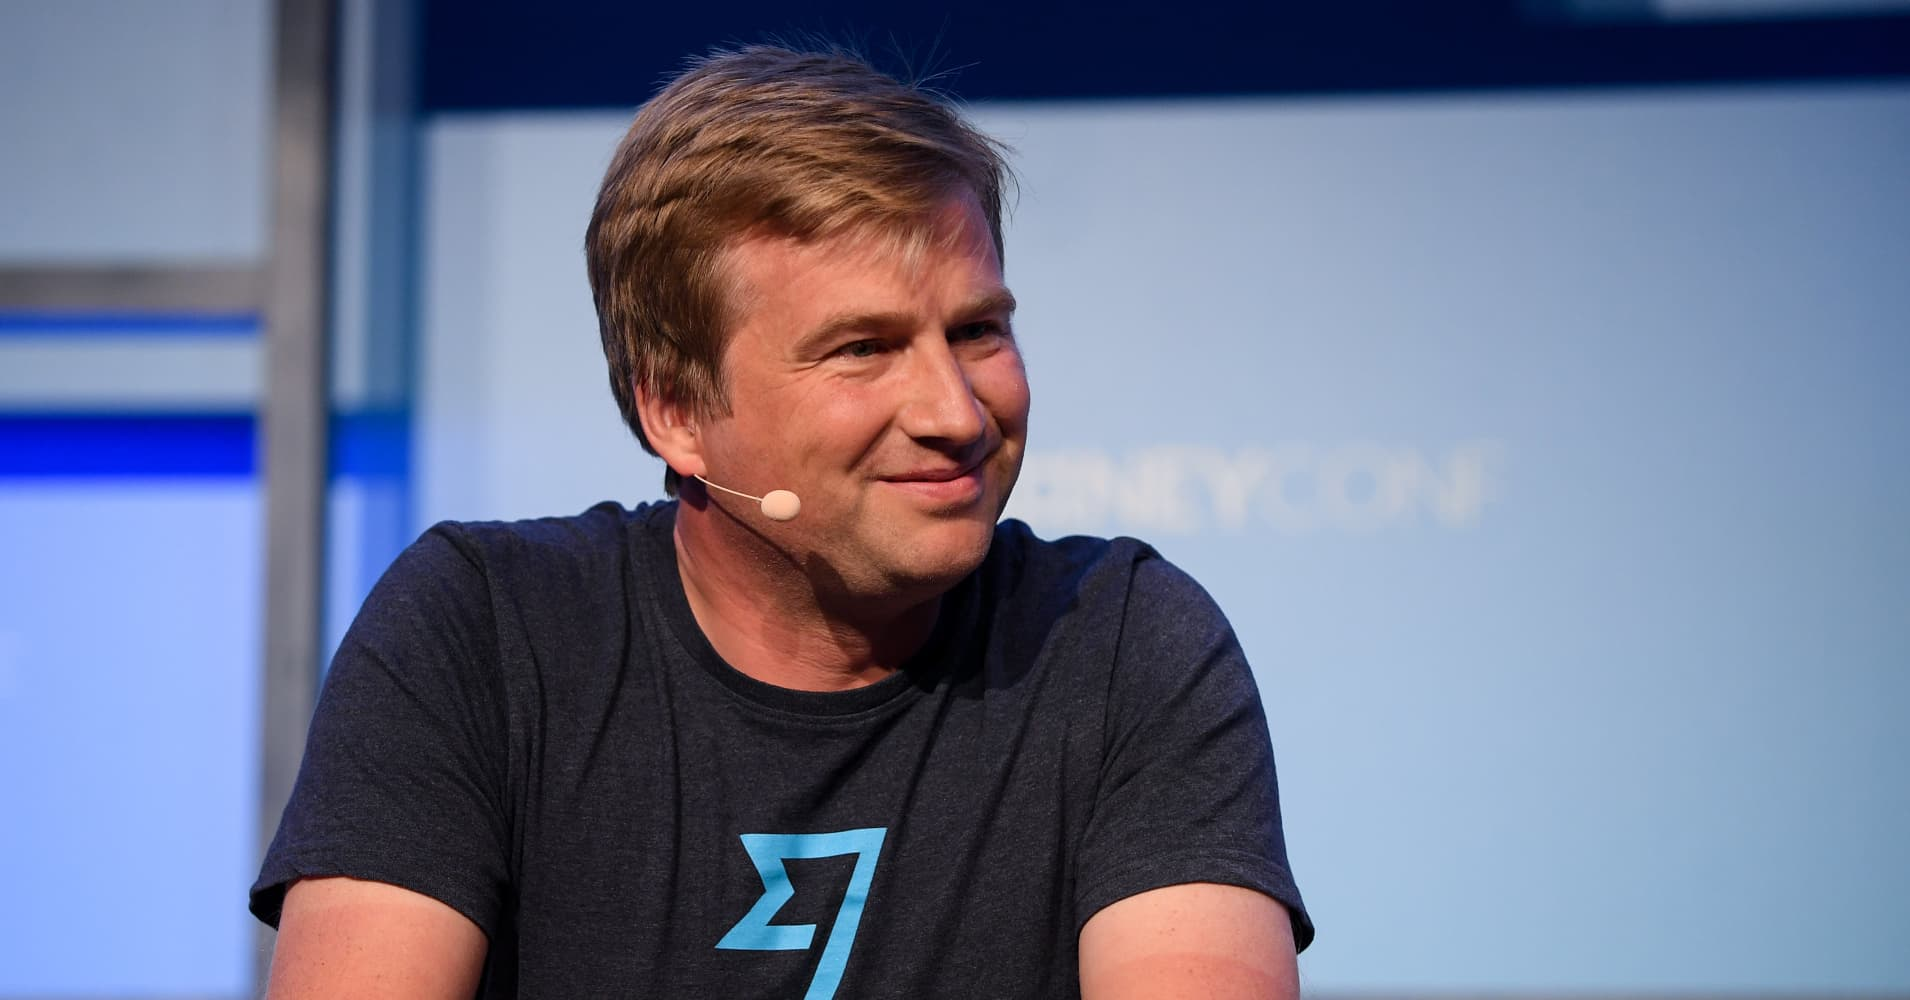 Fintech start-up TransferWise reports second year of profit, revenue almost doubles